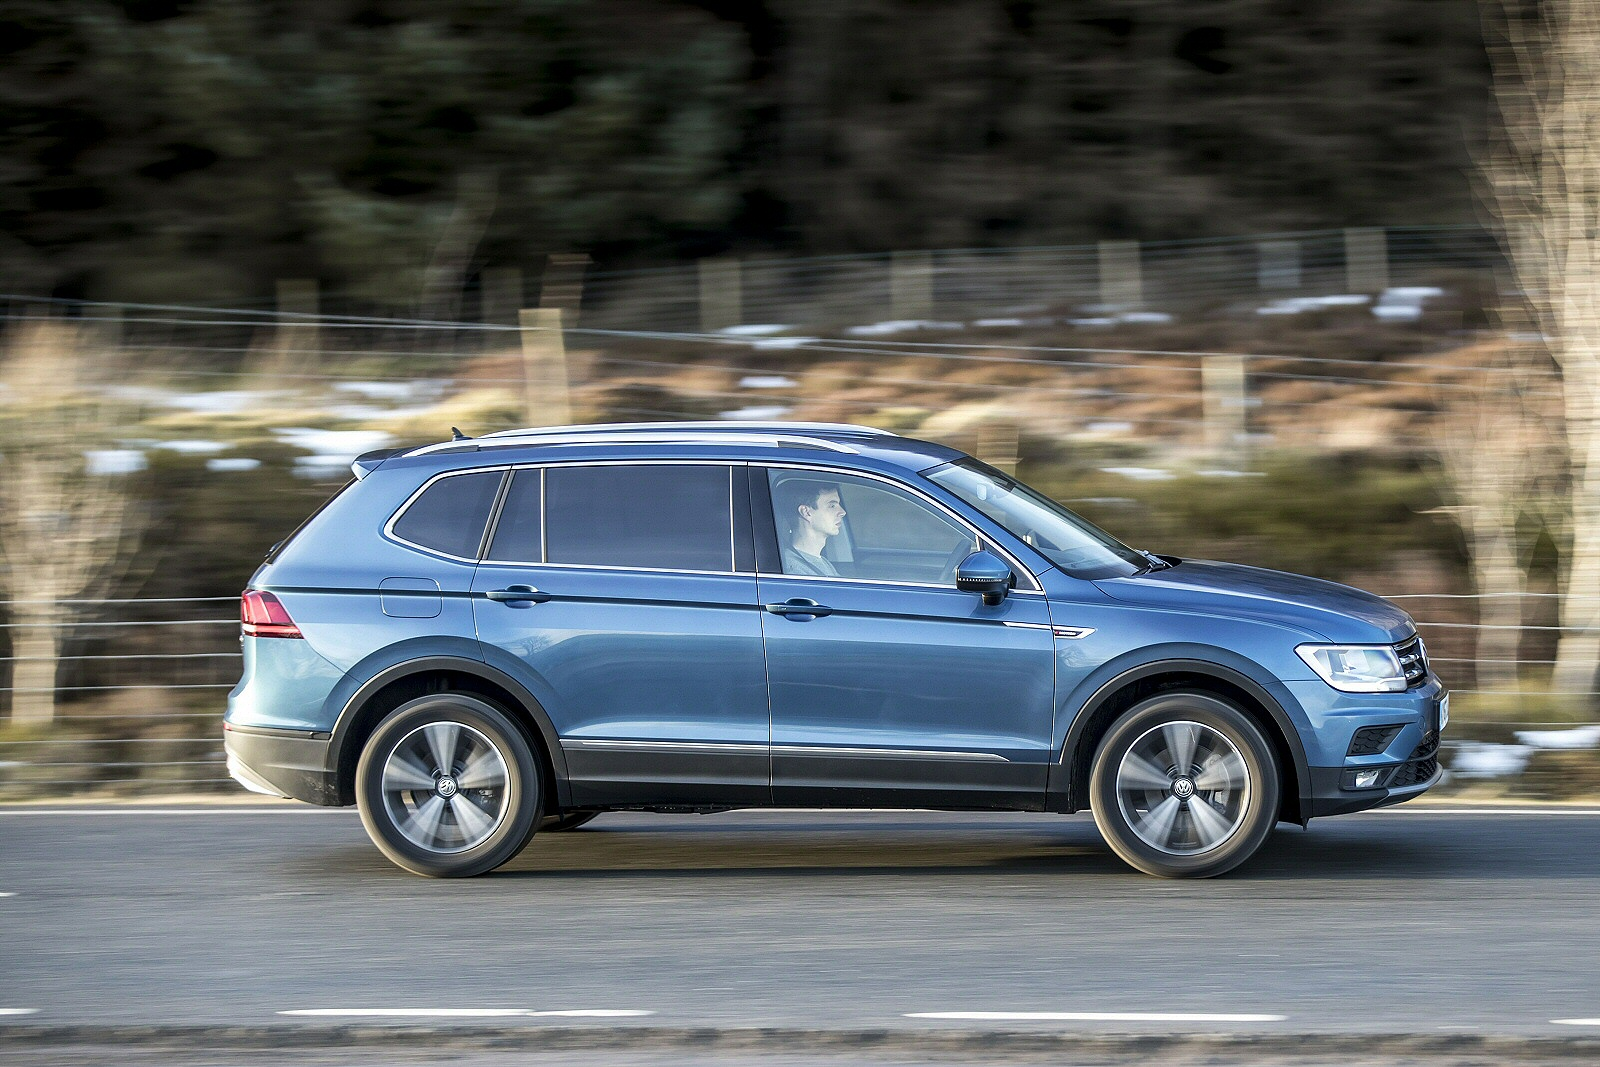 New Volkswagen Tiguan Allspace 20 Tdi 4motion Sel 5dr Diesel Estate Vw Touareg Central Wiring Harness Single Parts A For Sale Vertu